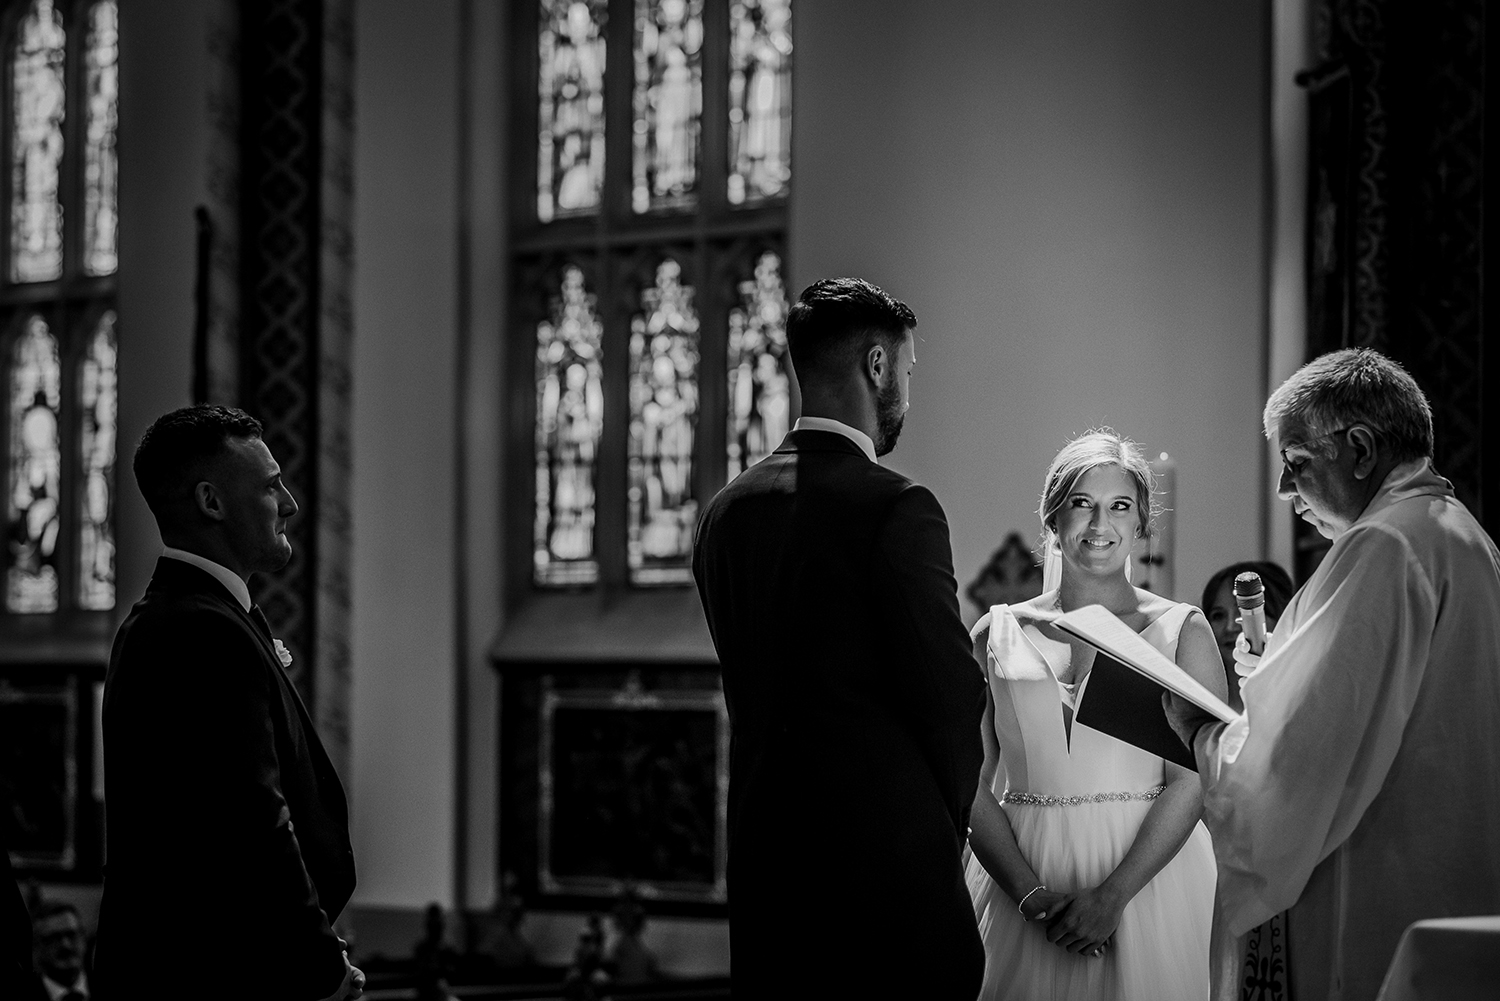 bw photo of bride smiling at groom in church